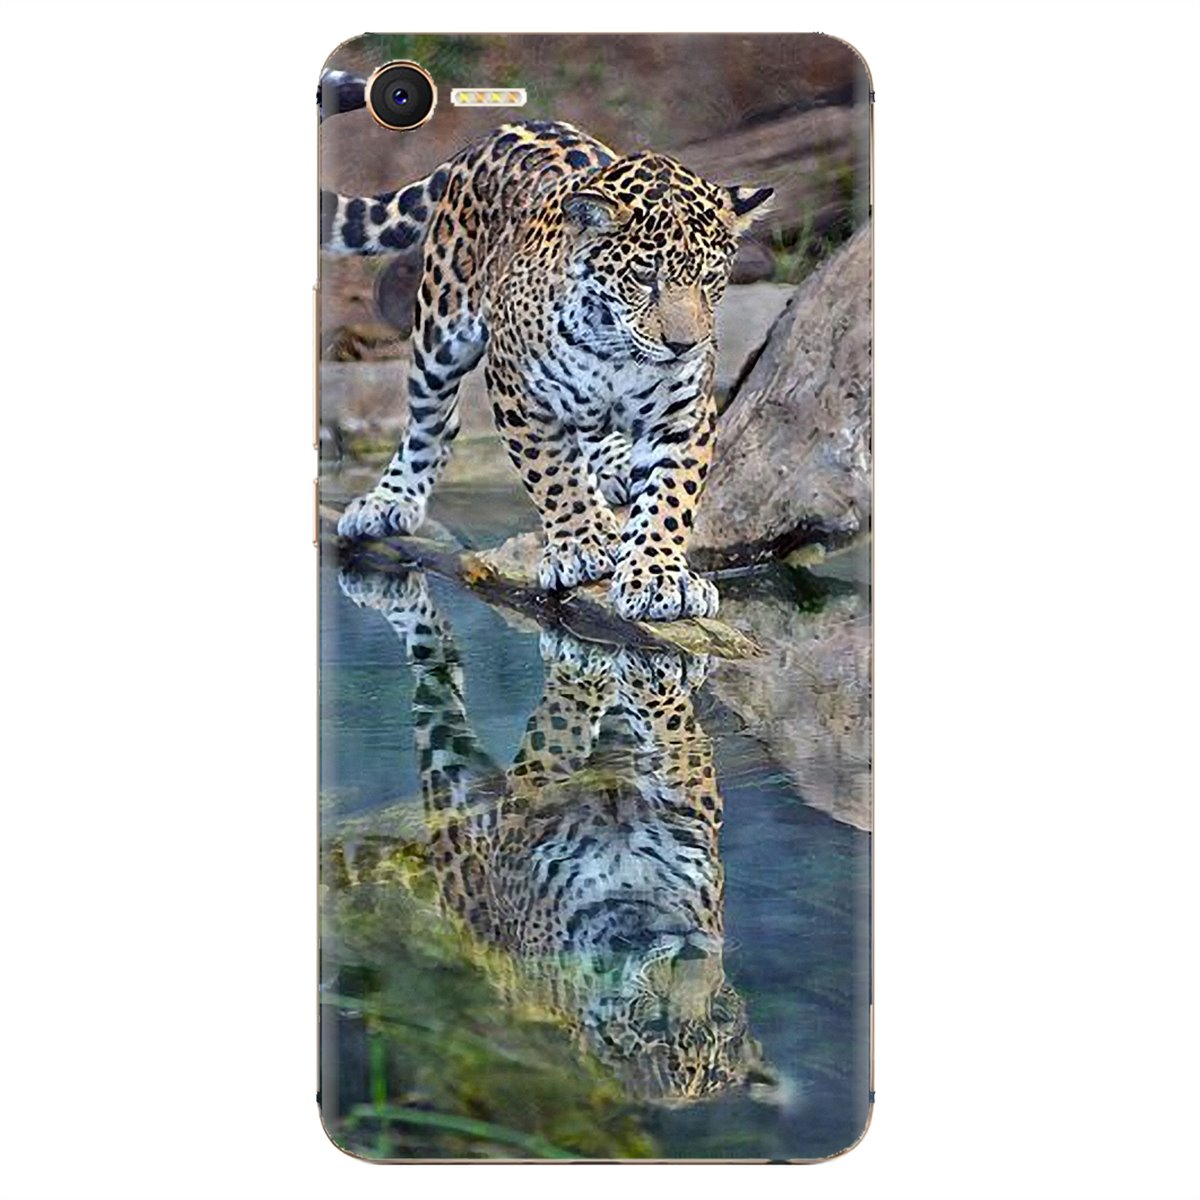 For Xiaomi Redmi 4A 7A S2 Note 8 3 3S 4 4X 5 Plus 6 7 6A Pro Pocophone F1 Buy Silicone Phone Case Baby Cheetah Full Speed Sunset(China)